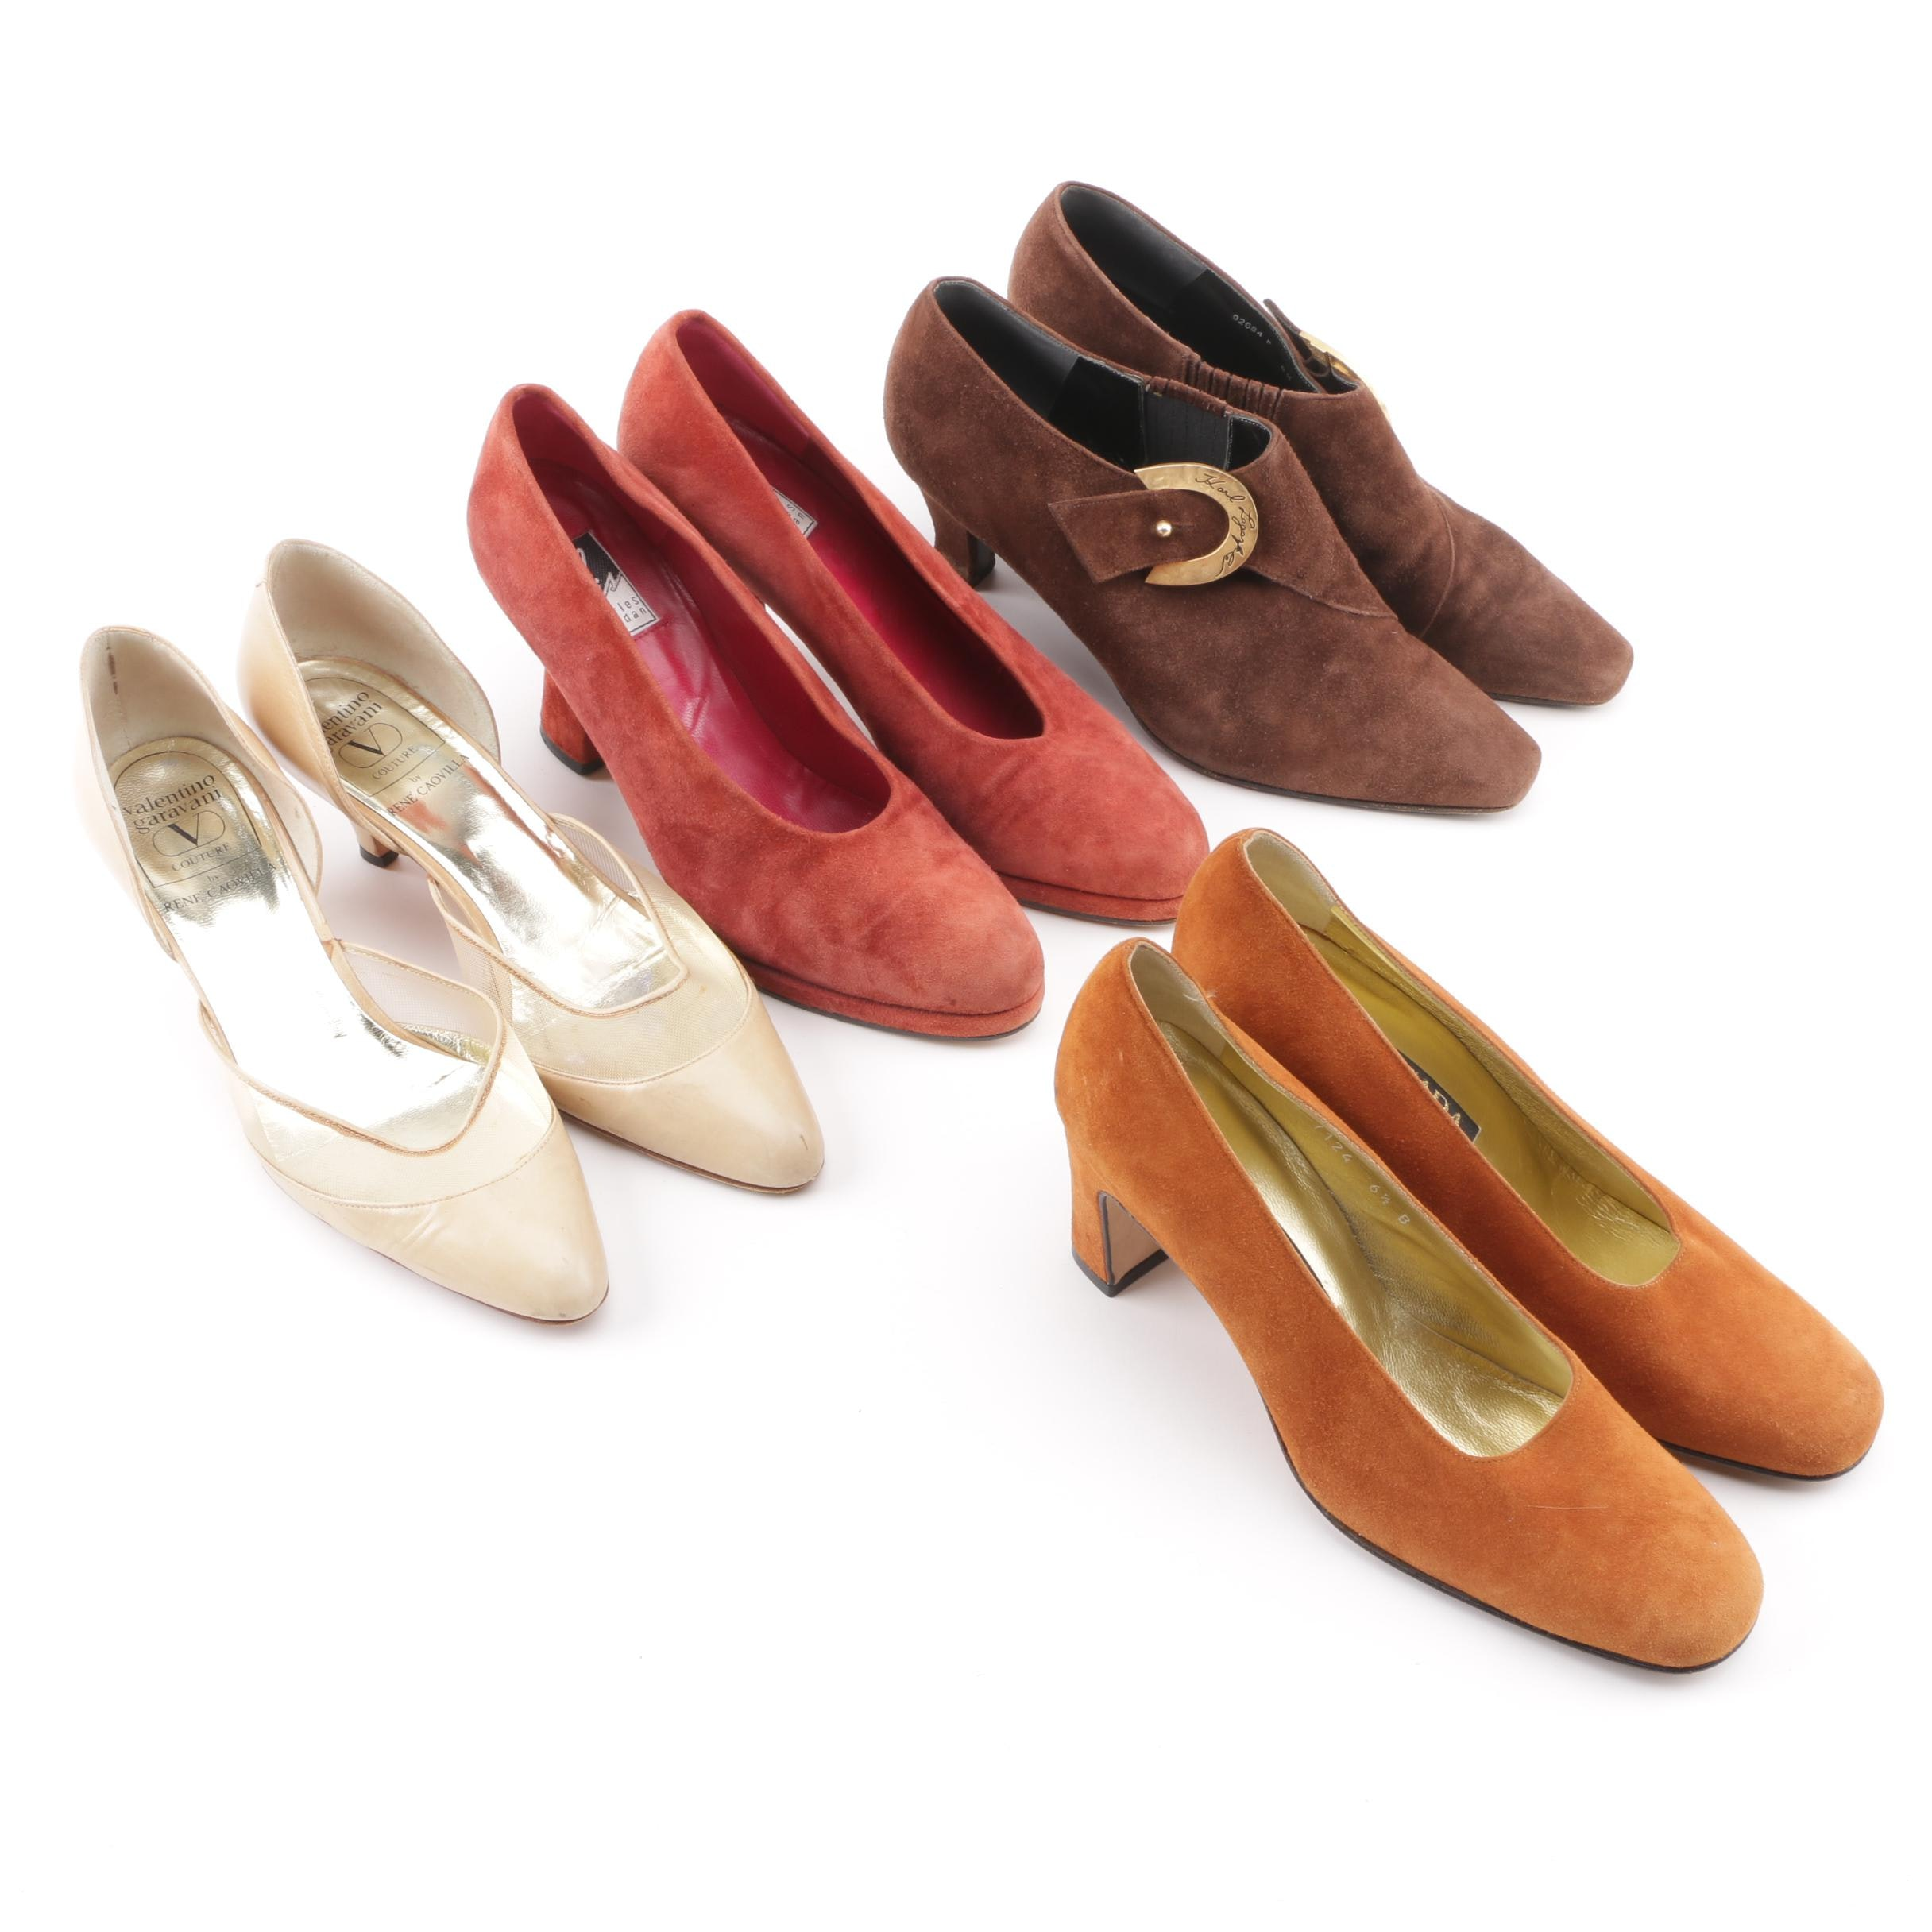 Women's Vintage Suede and Leather Heels including Valentino Garavani